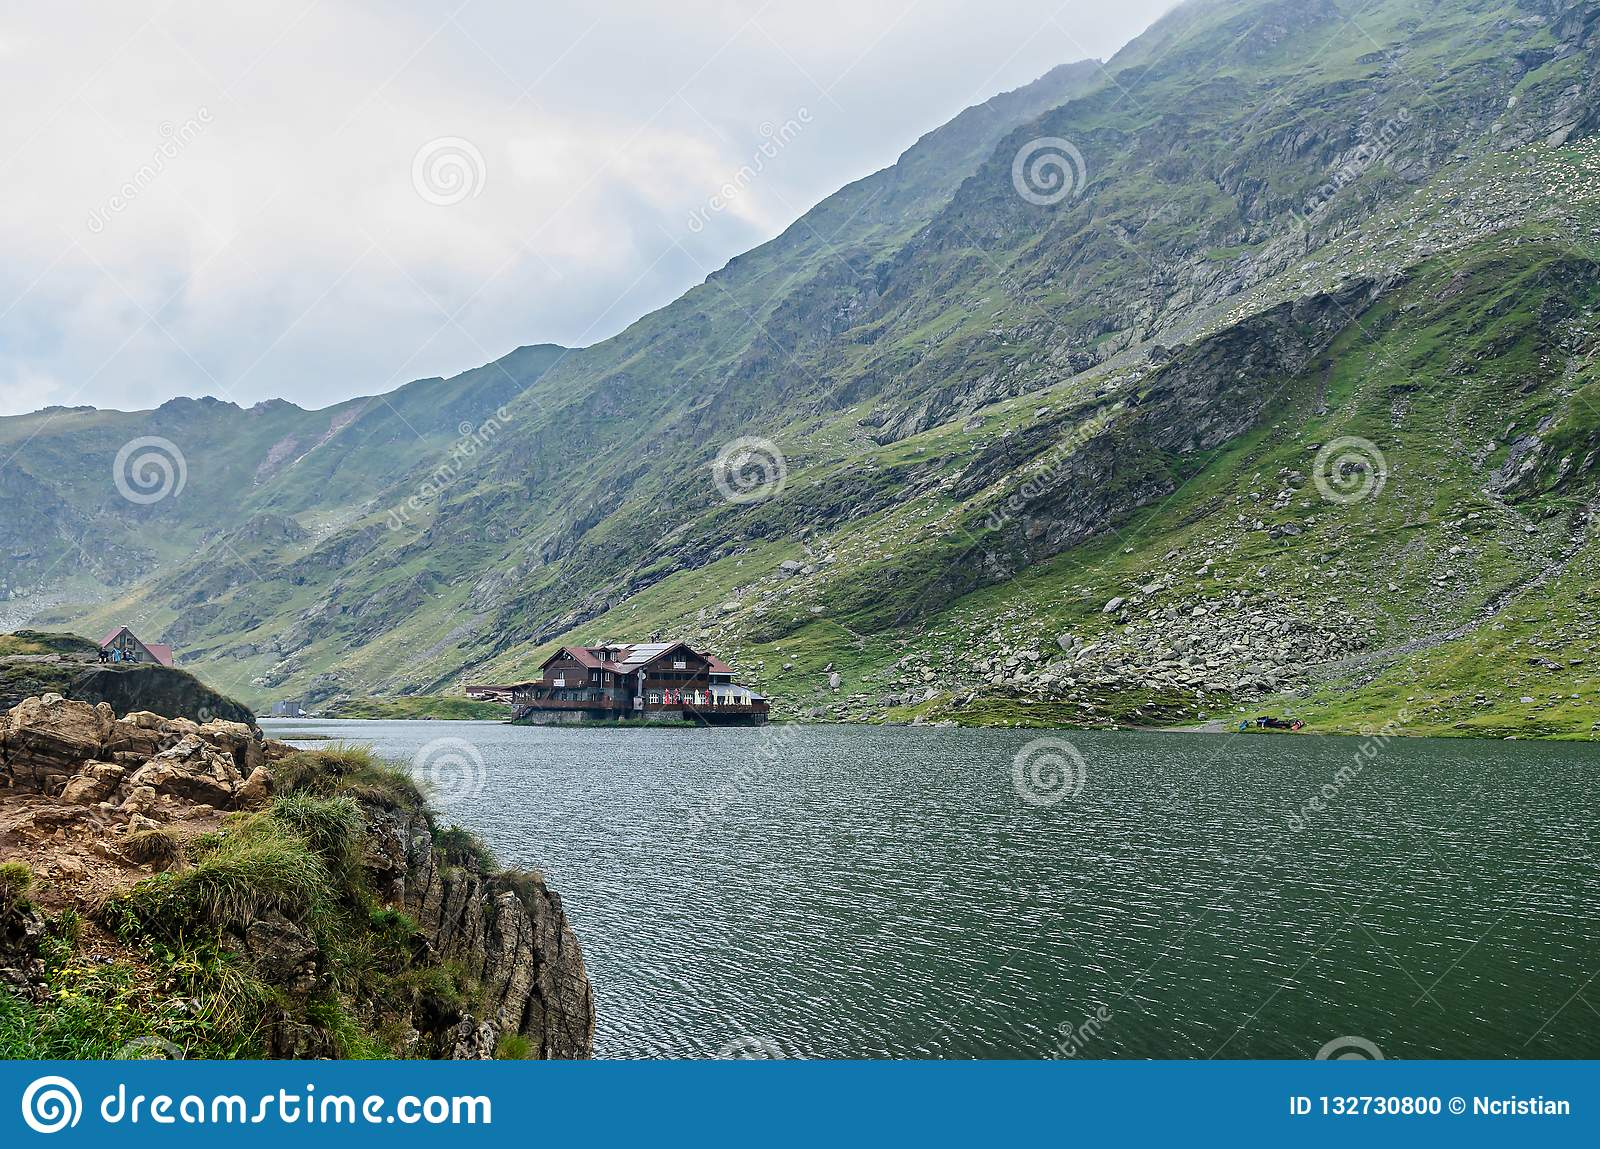 The glacier lake called Balea Balea Lac on the Transfagarasan